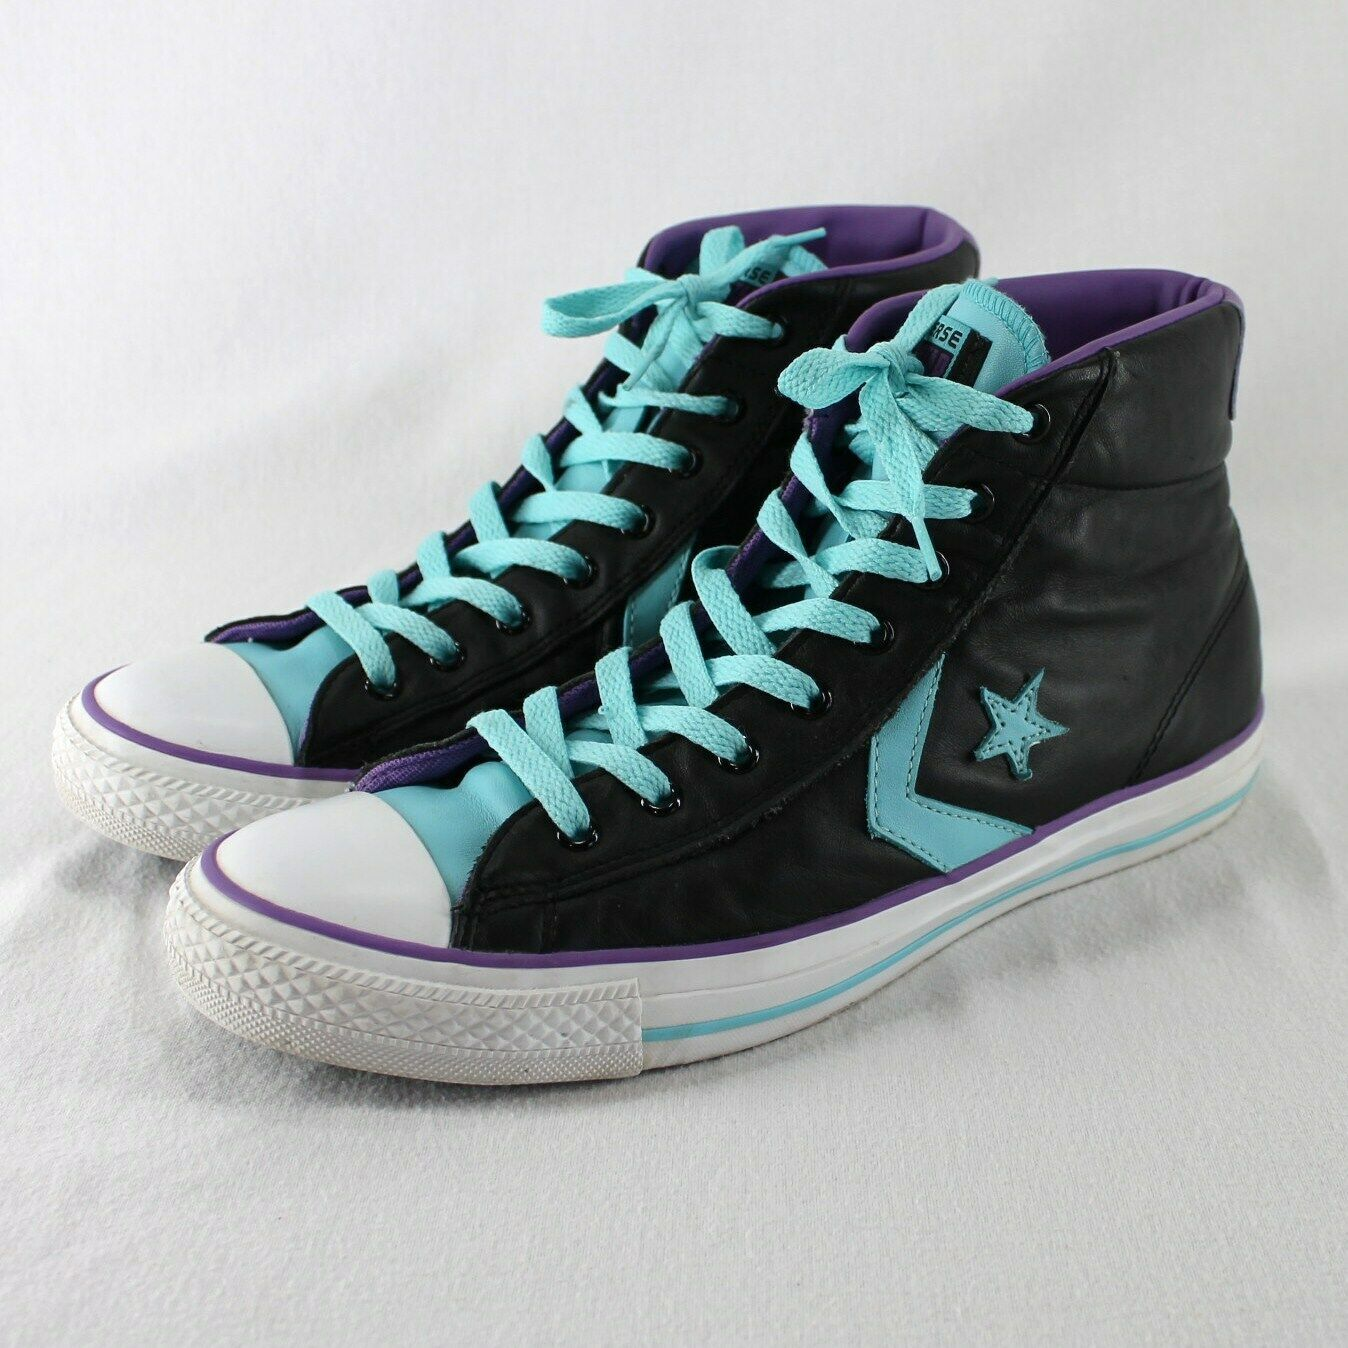 Converse All Star Leather High Top Shoes Mens 9 Womens 11 Black Blue Purple